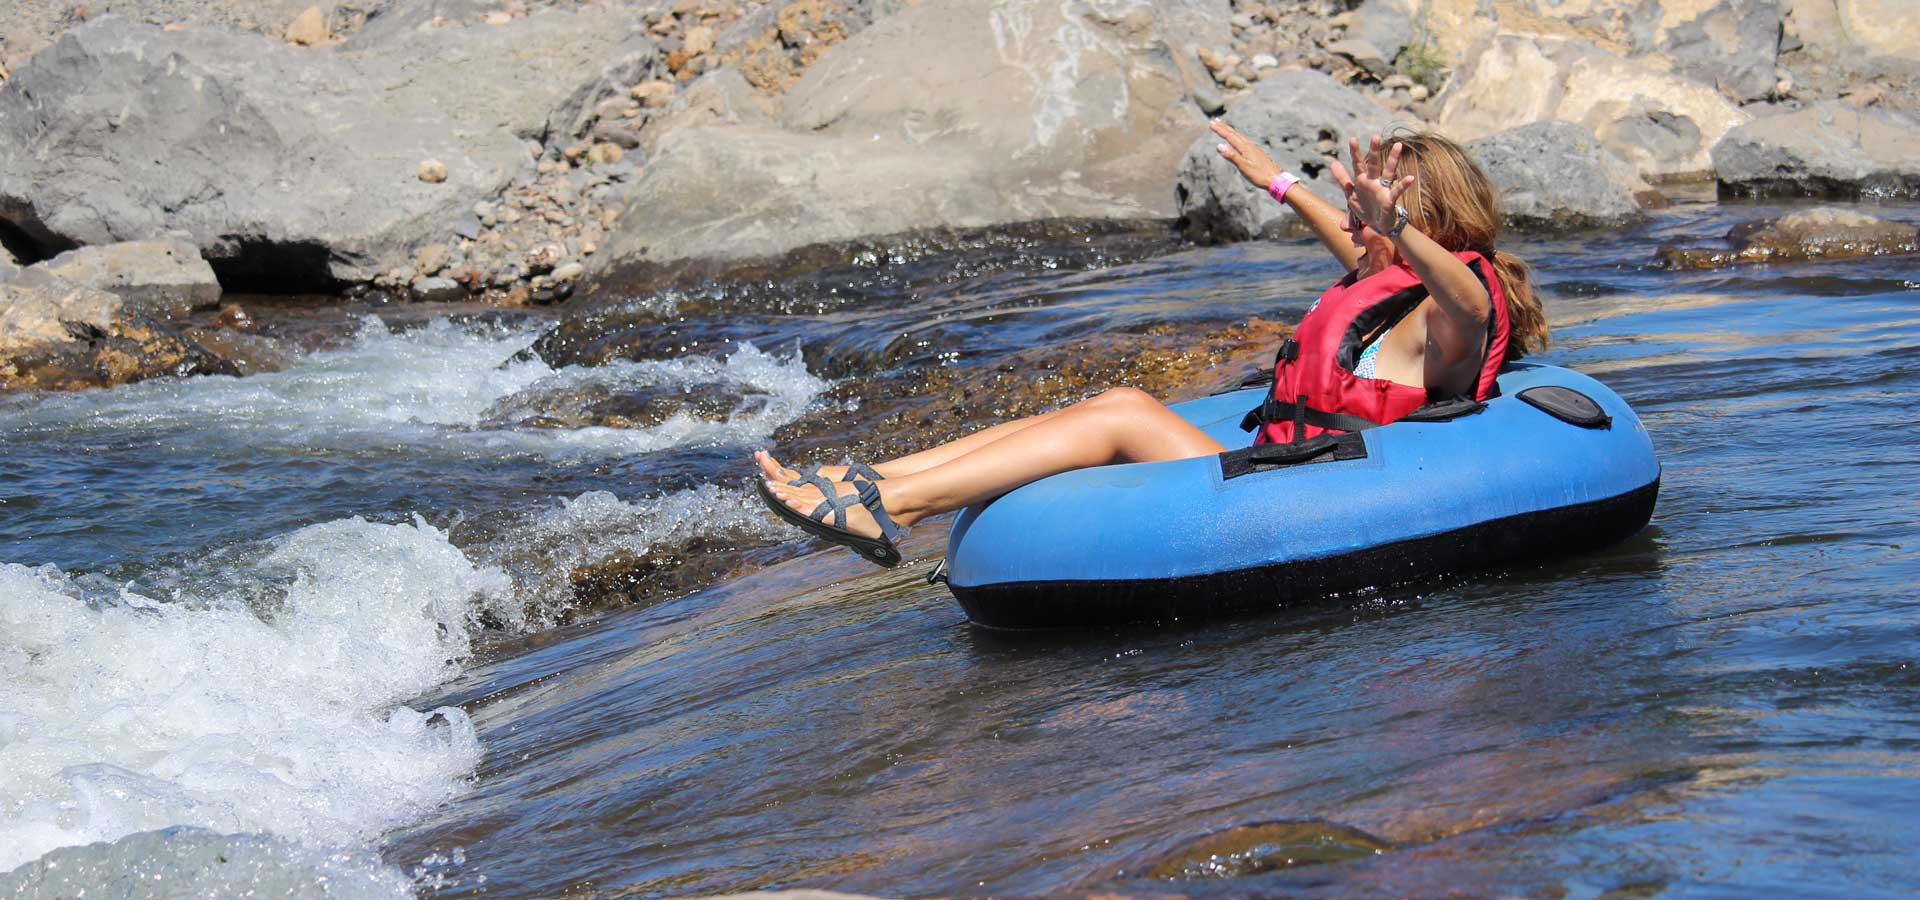 Image of a person going down the ladder, recreational floating channel of the Deschutes River through the Bend Whitewwater Park.